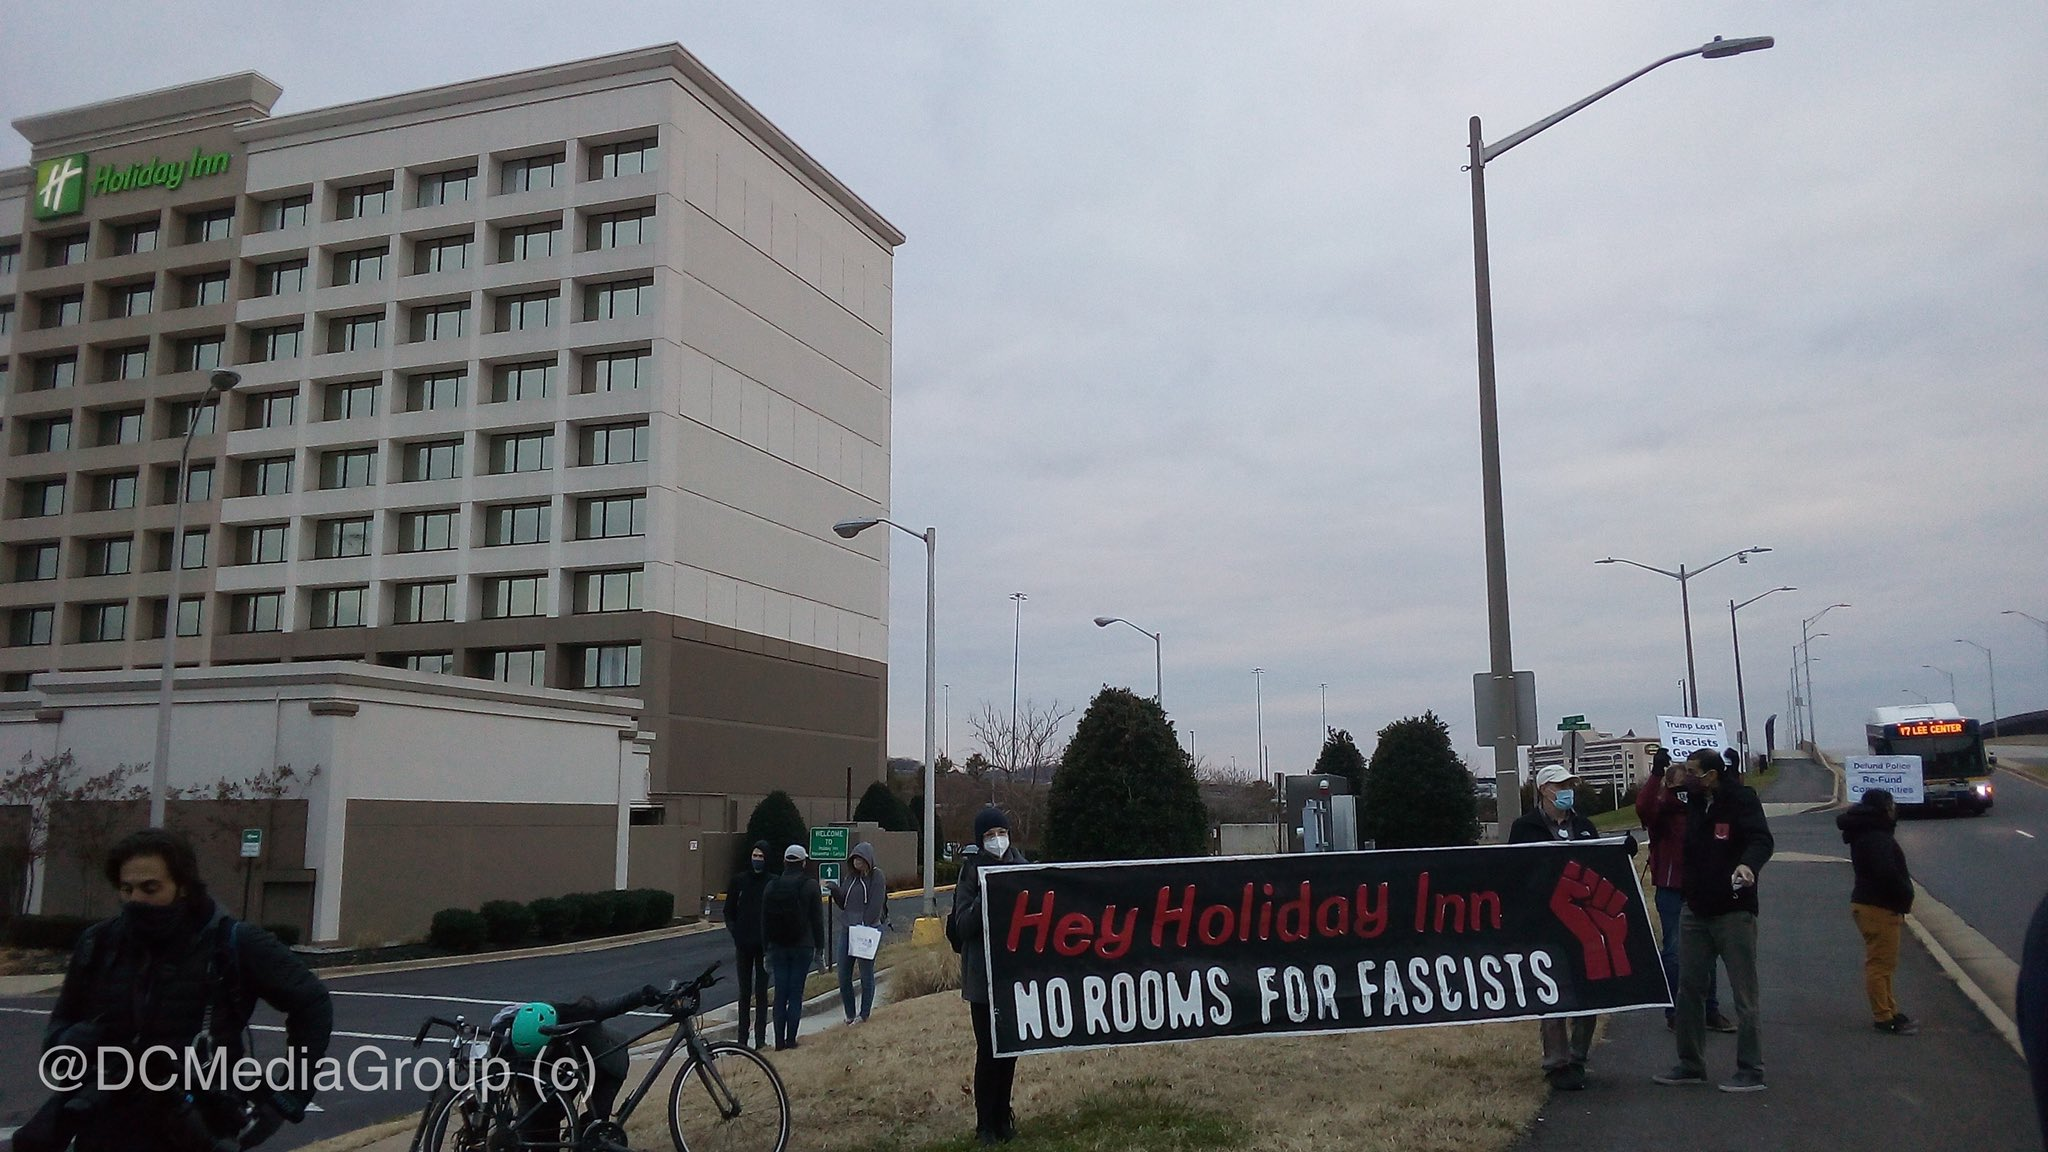 Antifascists in Washington D.C. Protest Against Holiday Inn